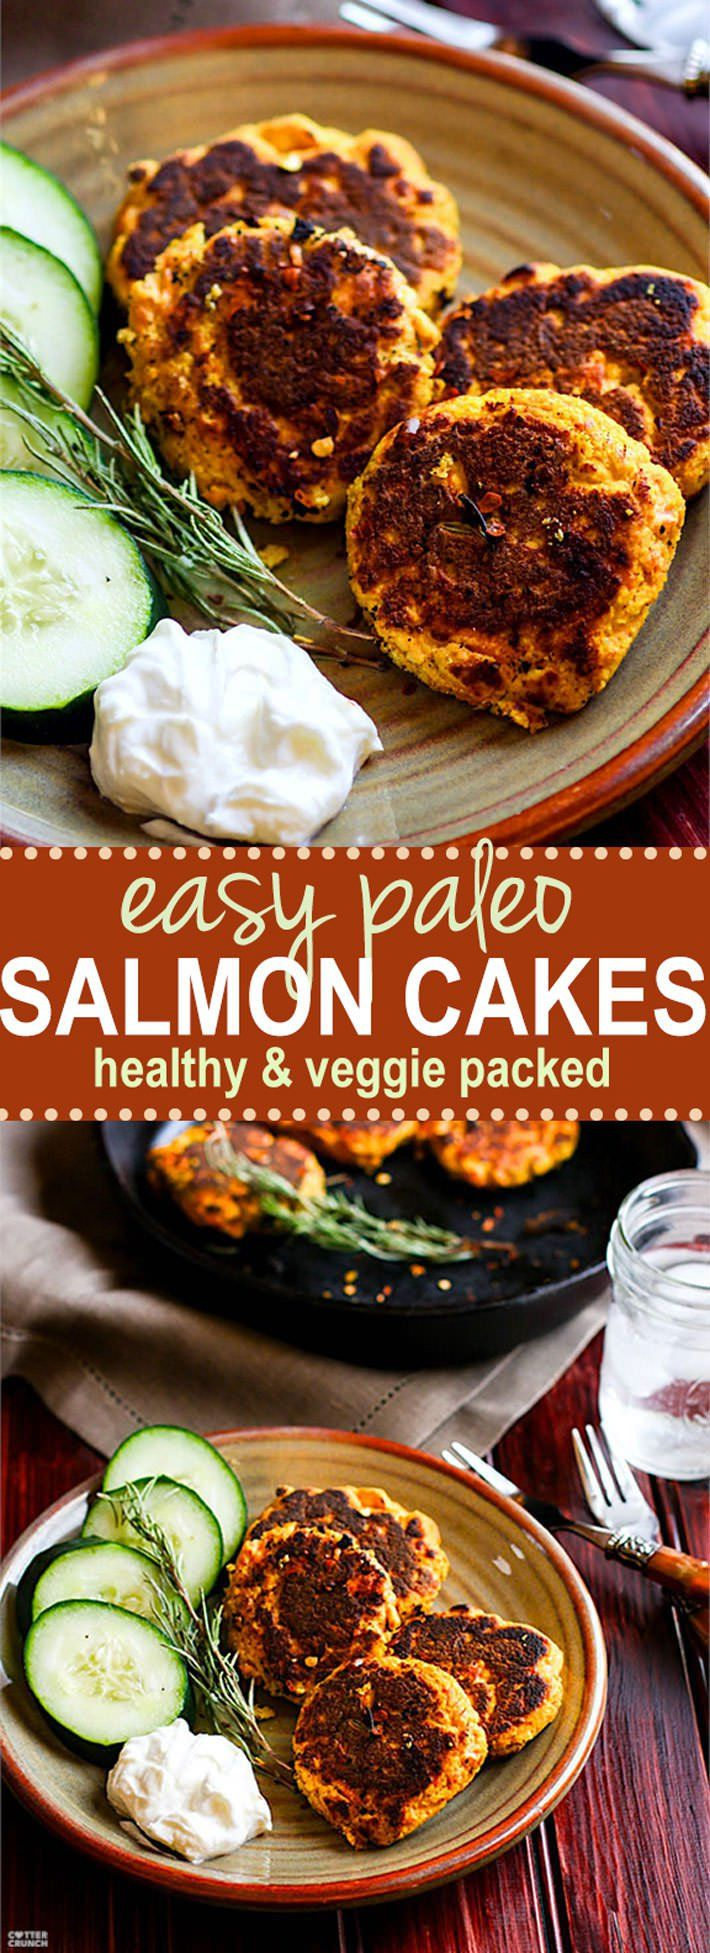 Healthy Vegetable Packed Paleo Salmon Cakes! Super easy, super simple ...